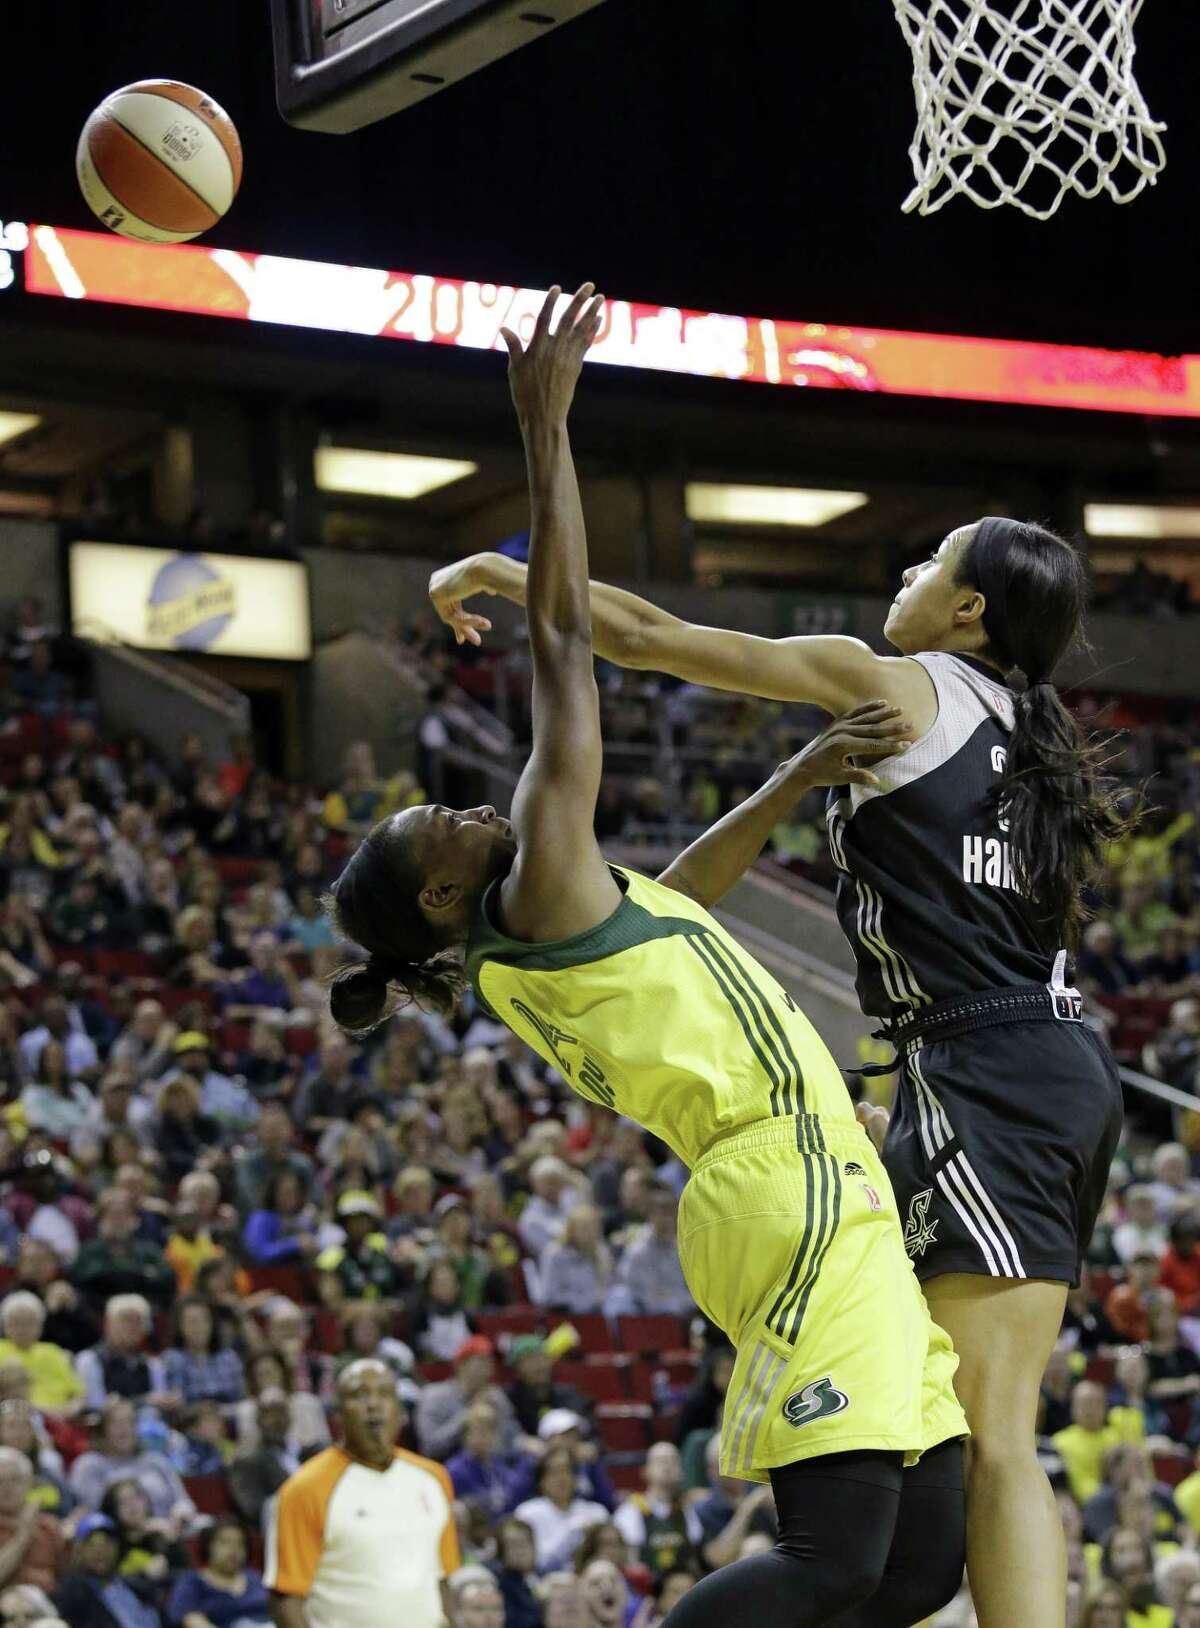 San Antonio Stars' Isabelle Harrison, right, blocks a shot by Seattle Storm's Jewell Loyd in the first half of a WNBA basketball game Sunday, June 18, 2017, in Seattle. (AP Photo/Elaine Thompson)